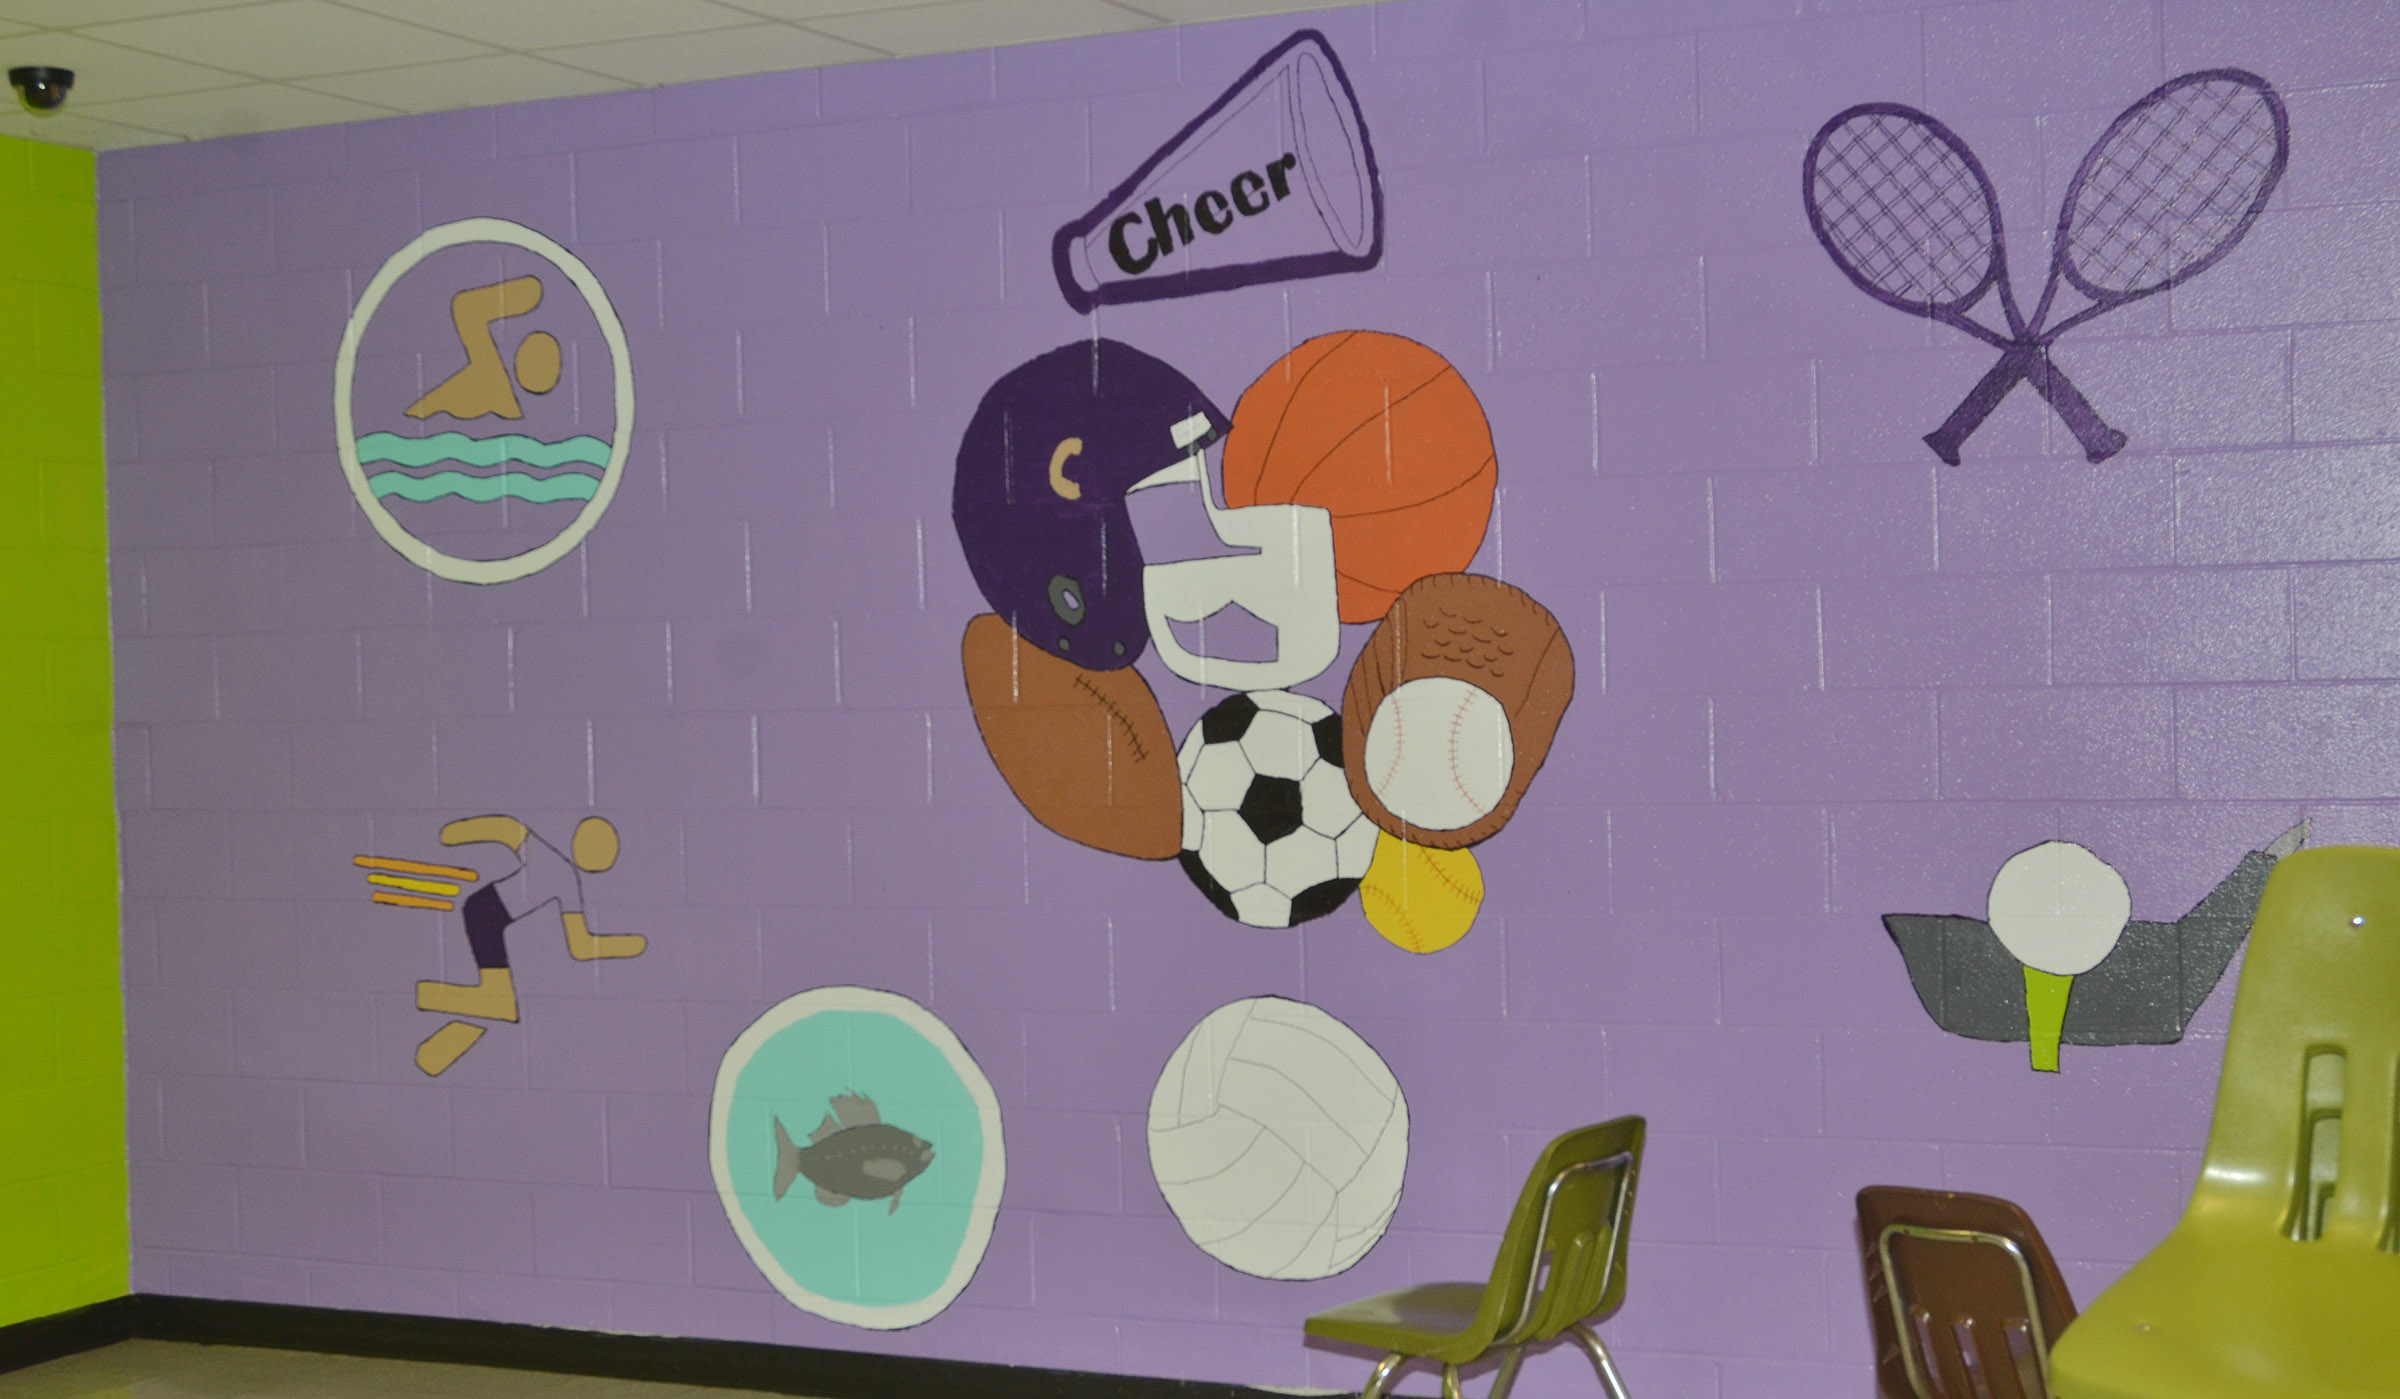 Cafeteria workers painted the walls in the CMS/CHS cafeteria this summer, like this one.